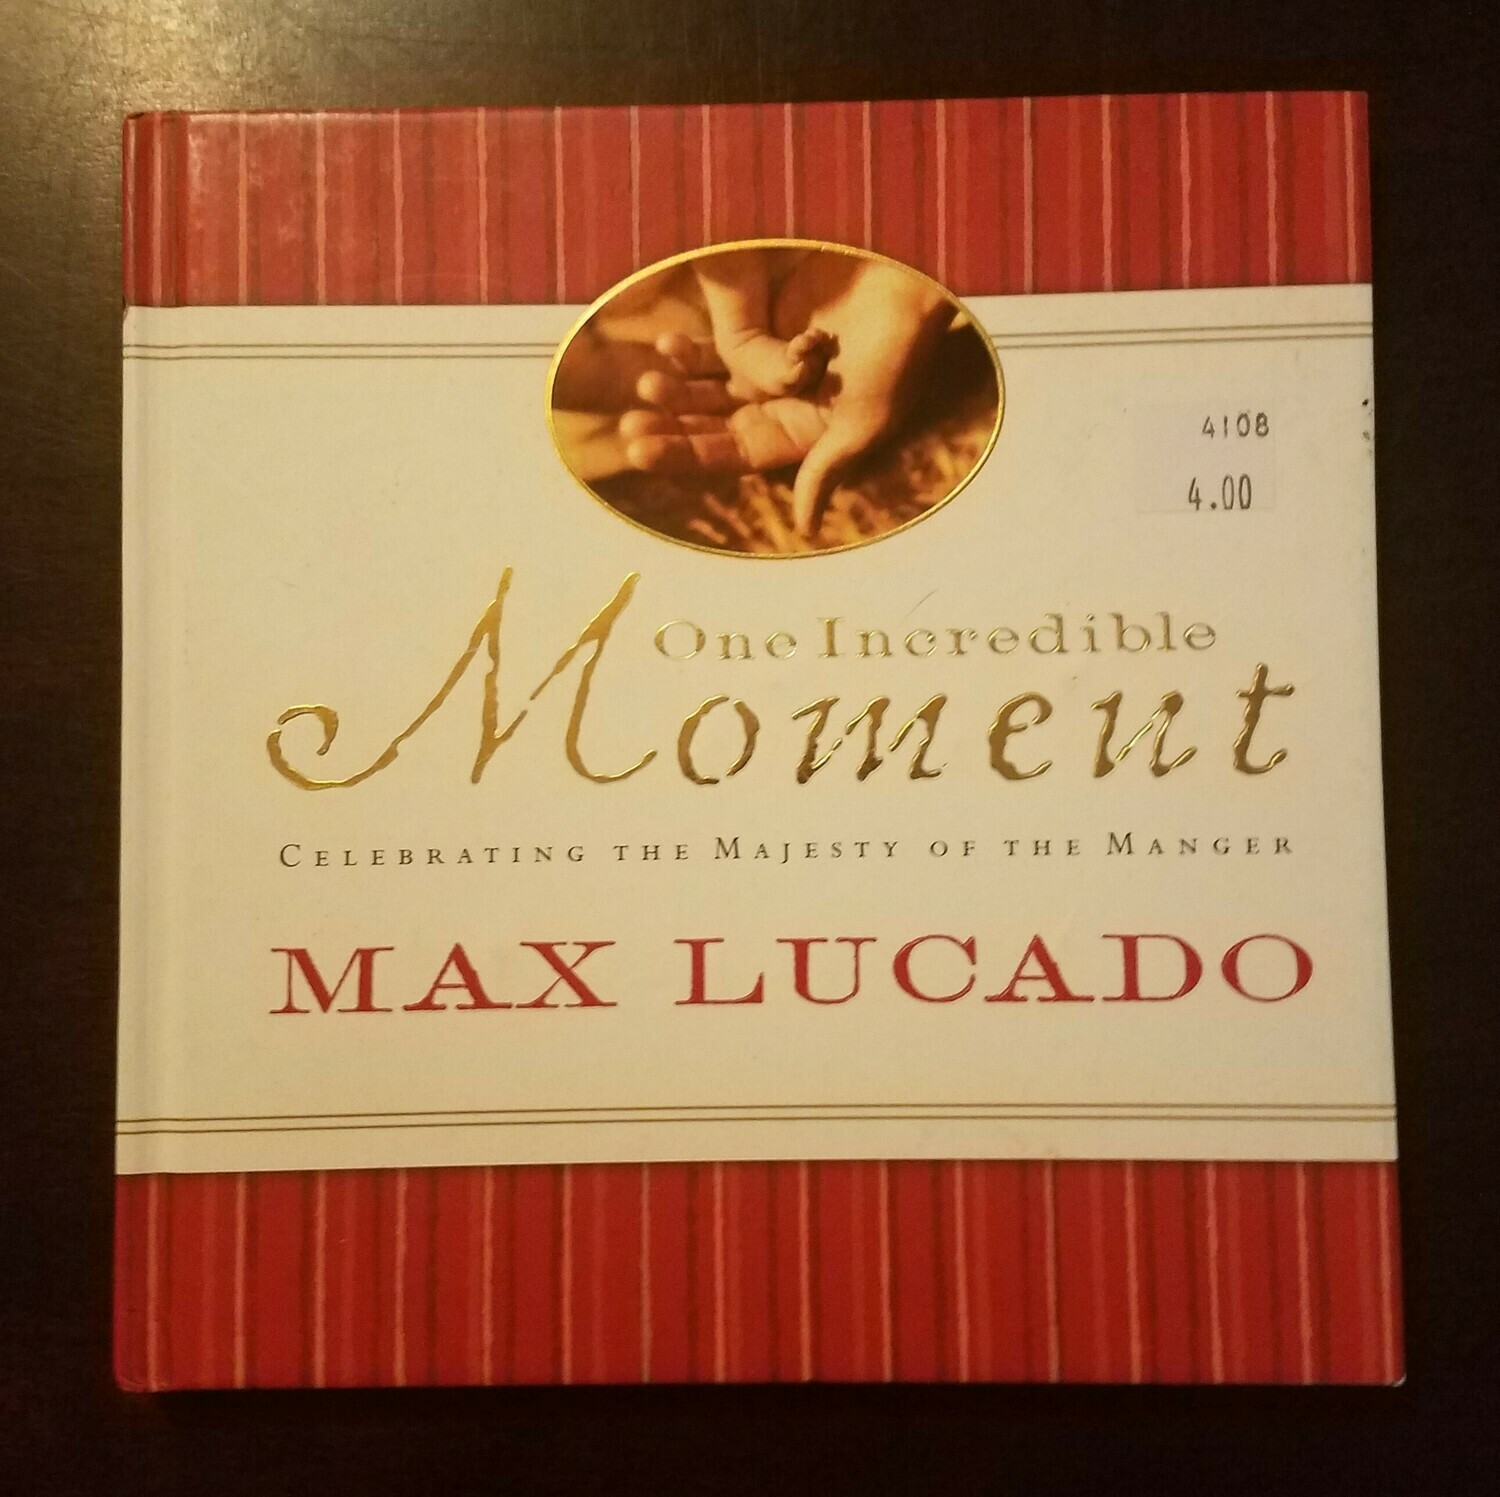 One Incredible Moment by Max Lucado